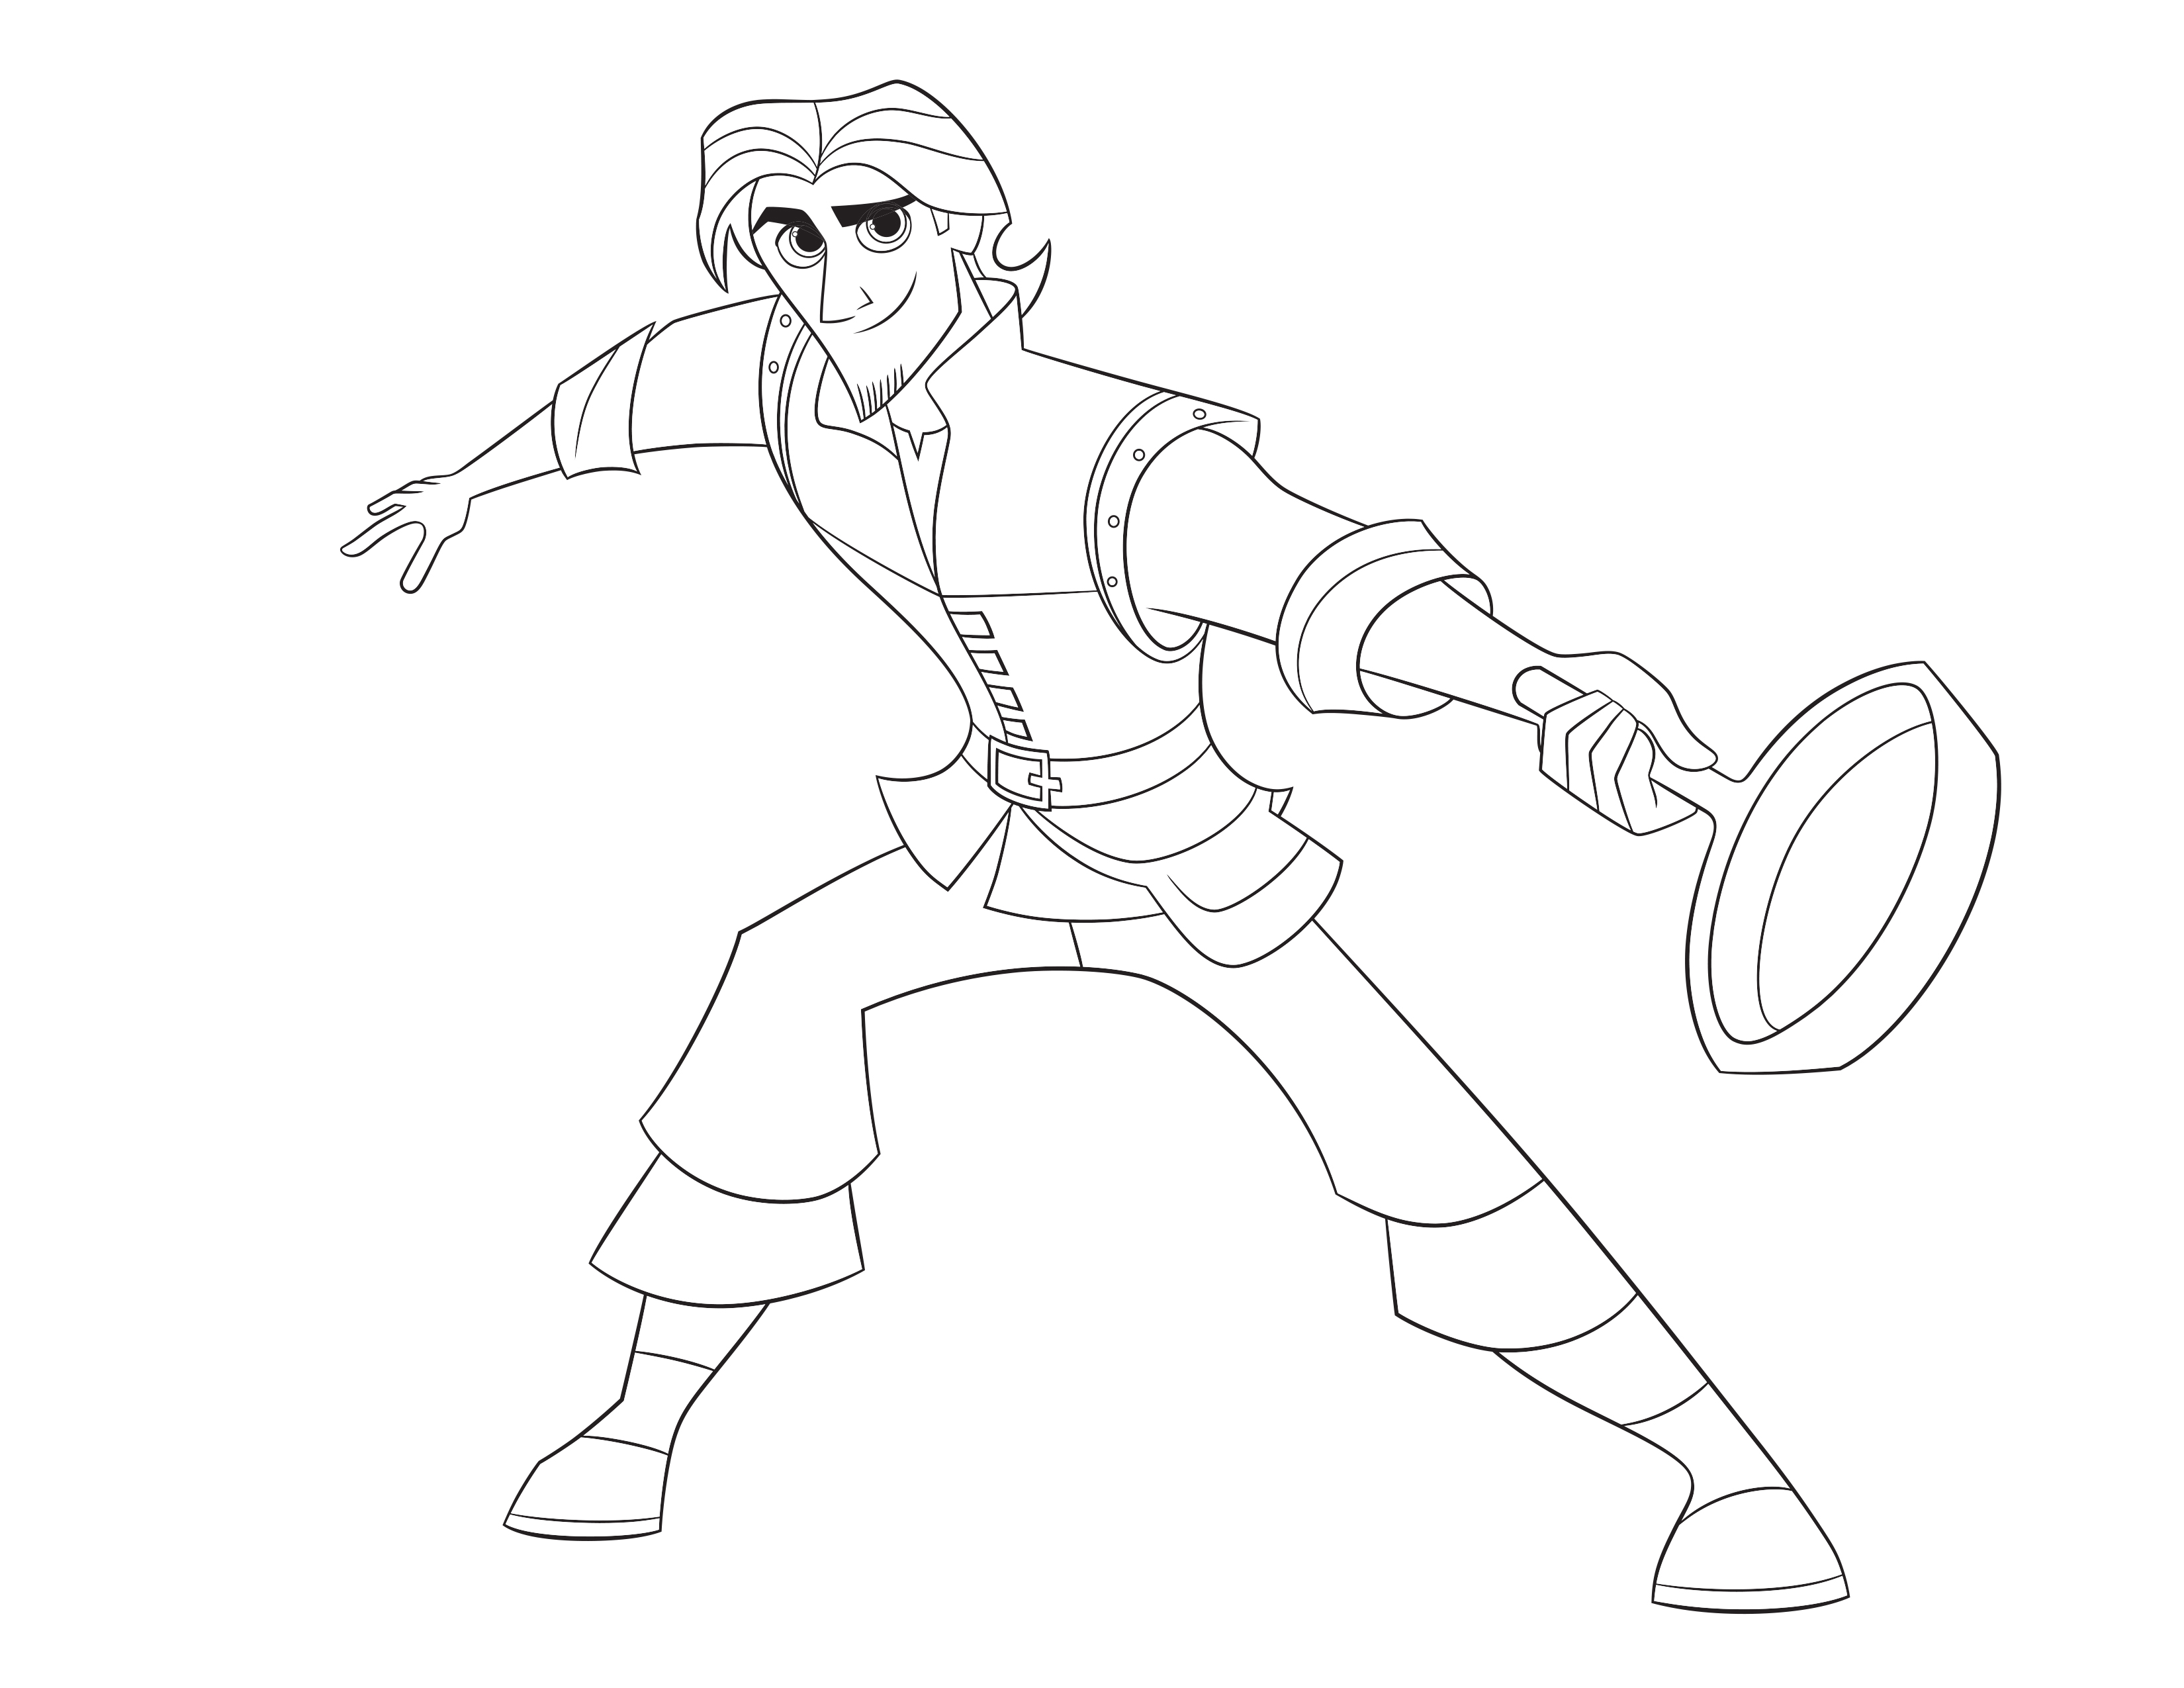 Coloring pages tangled - Tangled The Series Eugene Fitzherbert Coloring Page